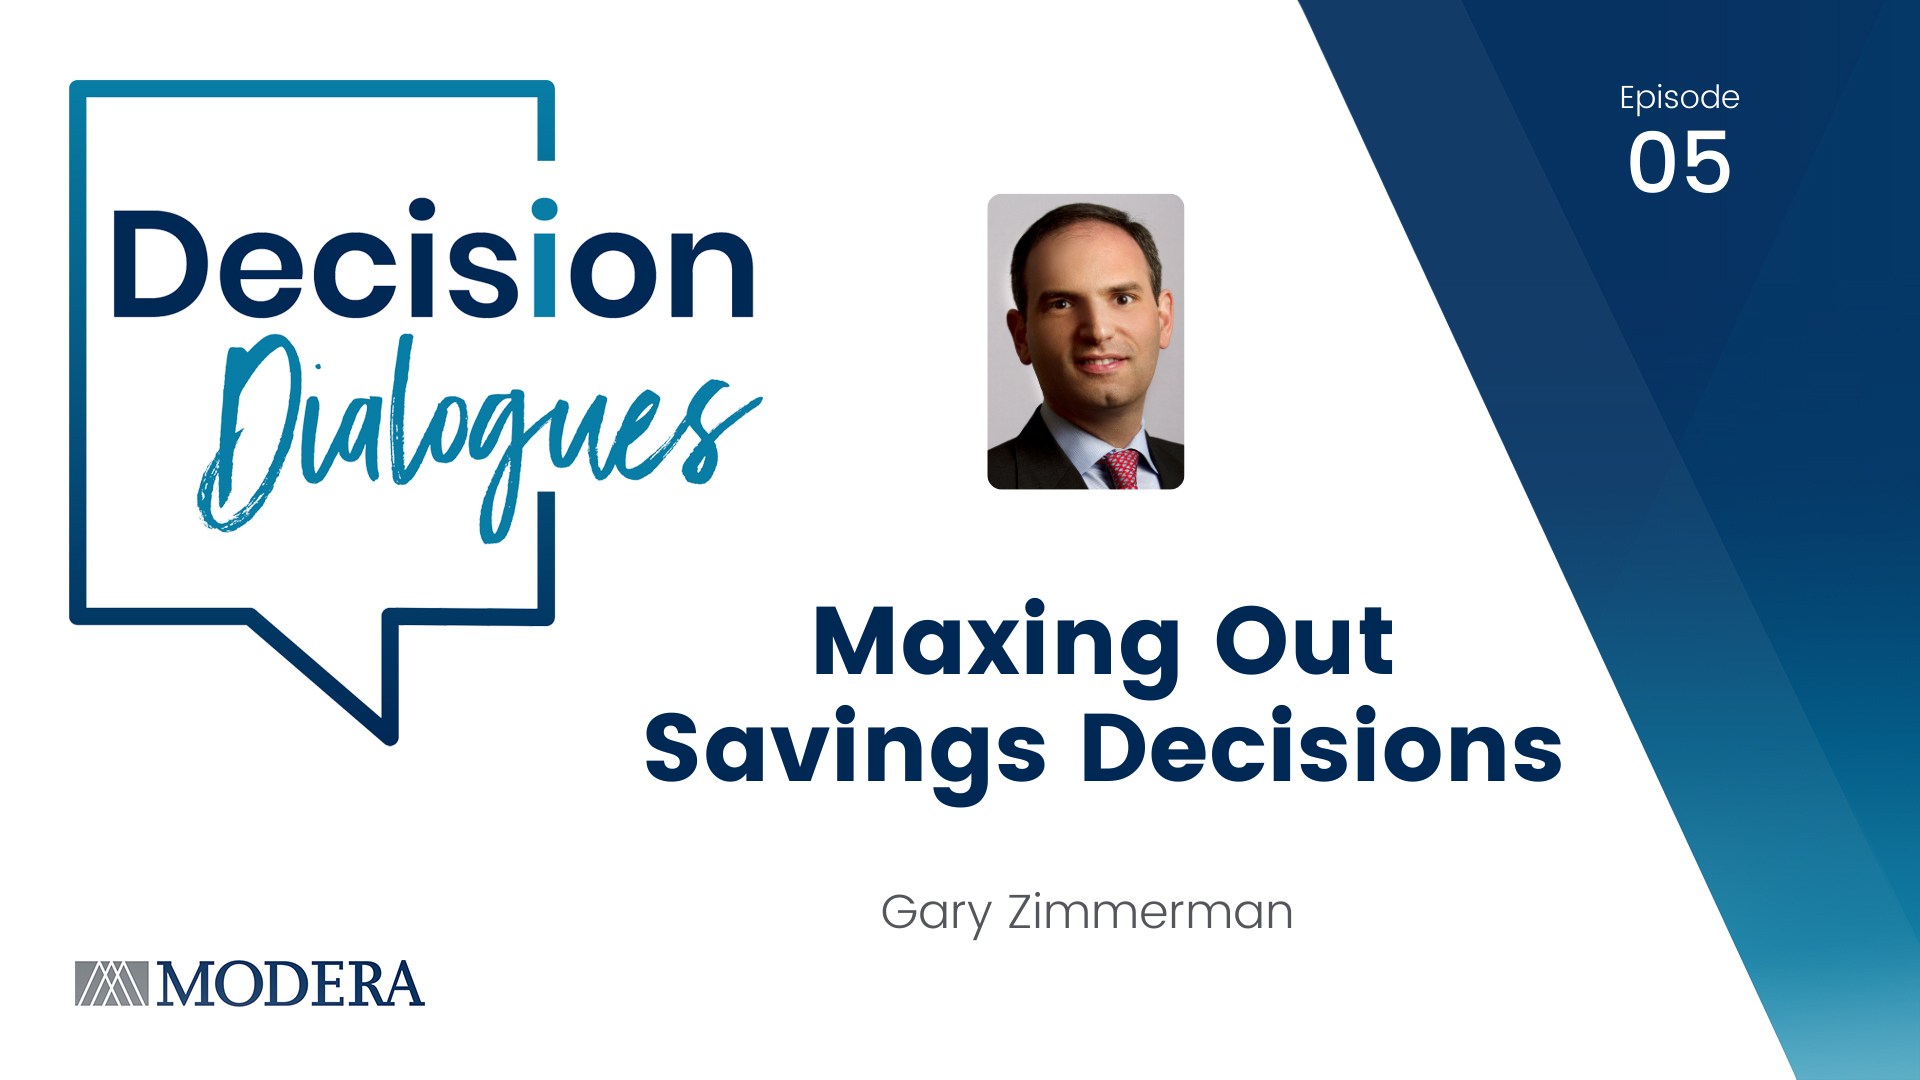 Decision Dialogues Episode 05: Maxing Out Savings Decisions with Gary Zimmerman